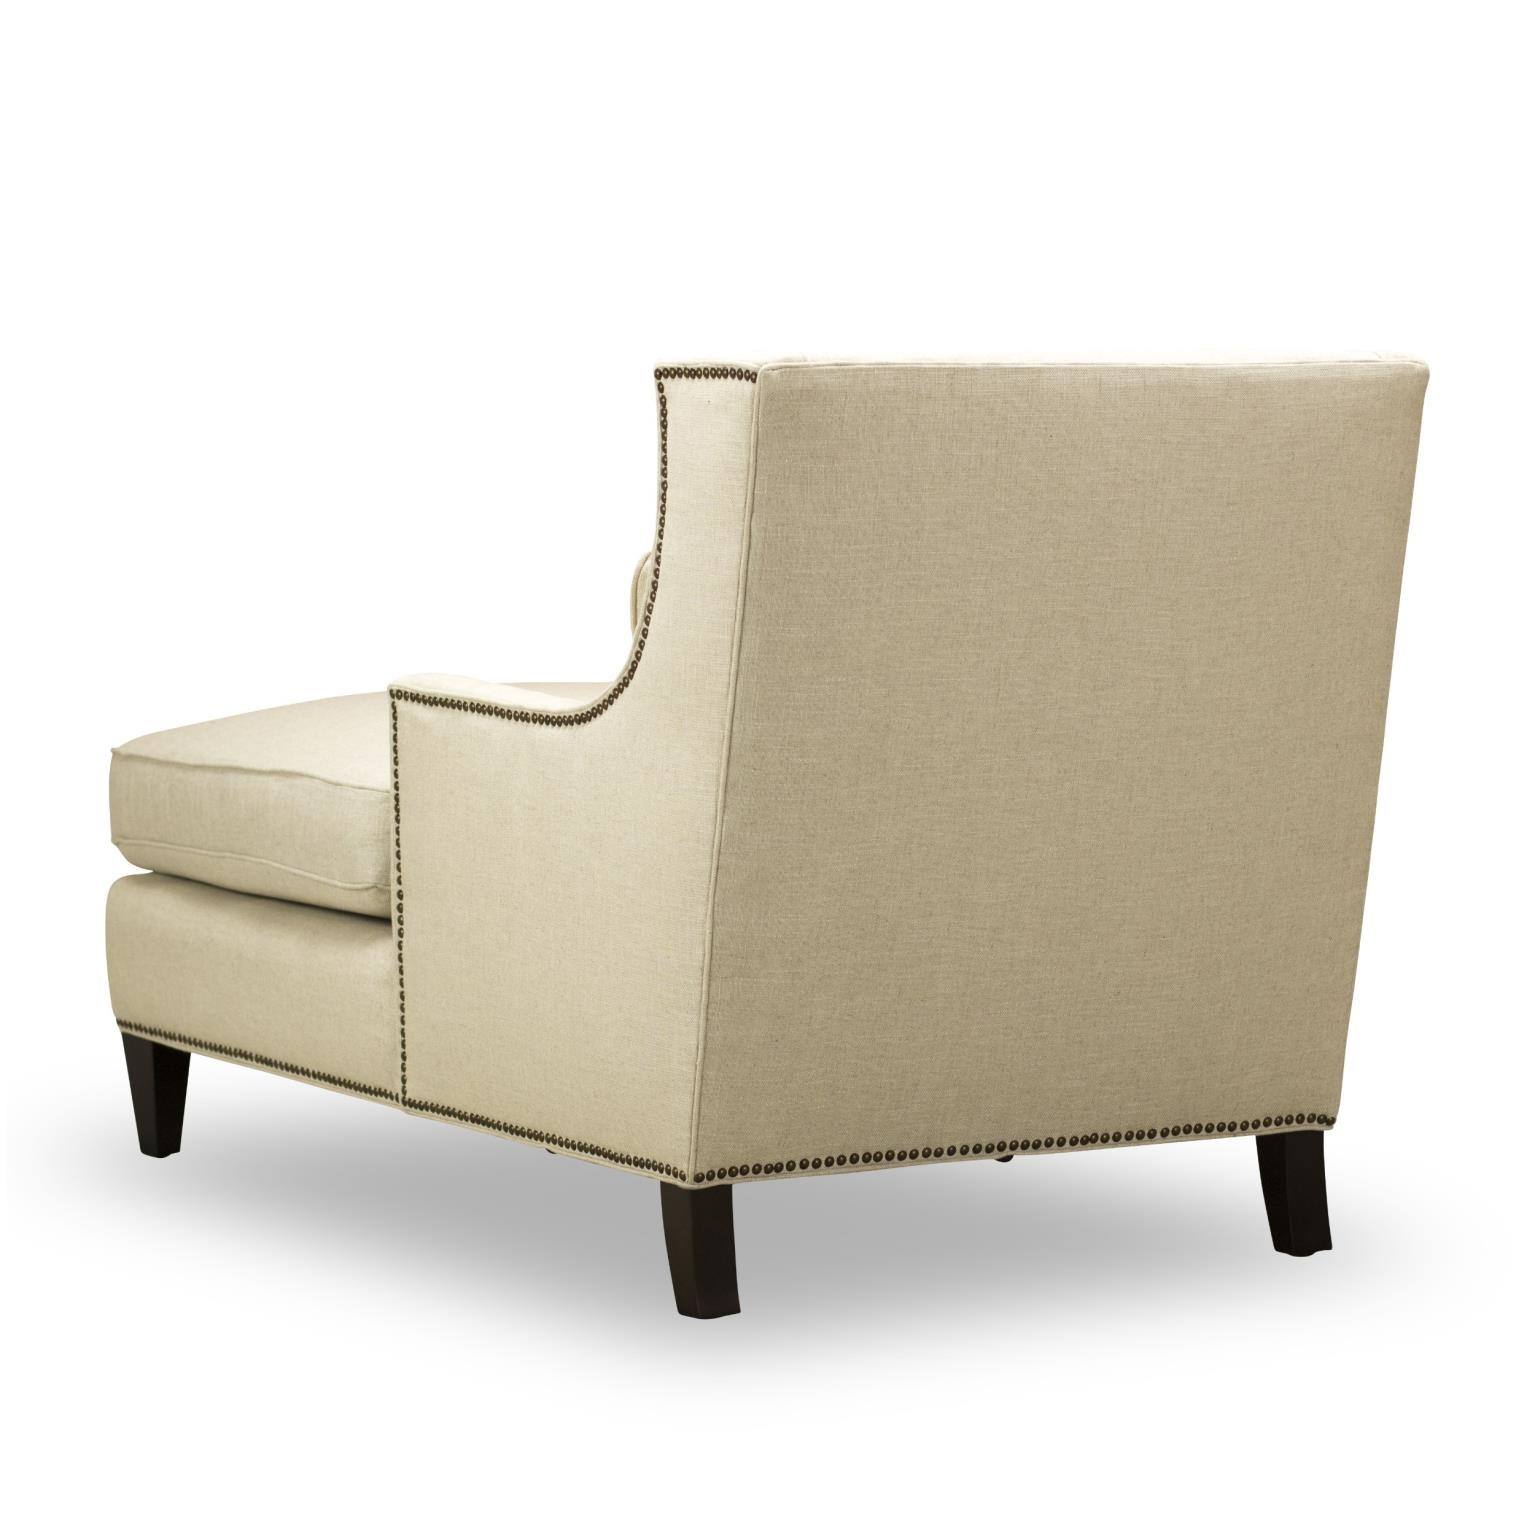 Ava chaise natural fabric by spectra home w c233 225 usa for Ava nailhead chaise